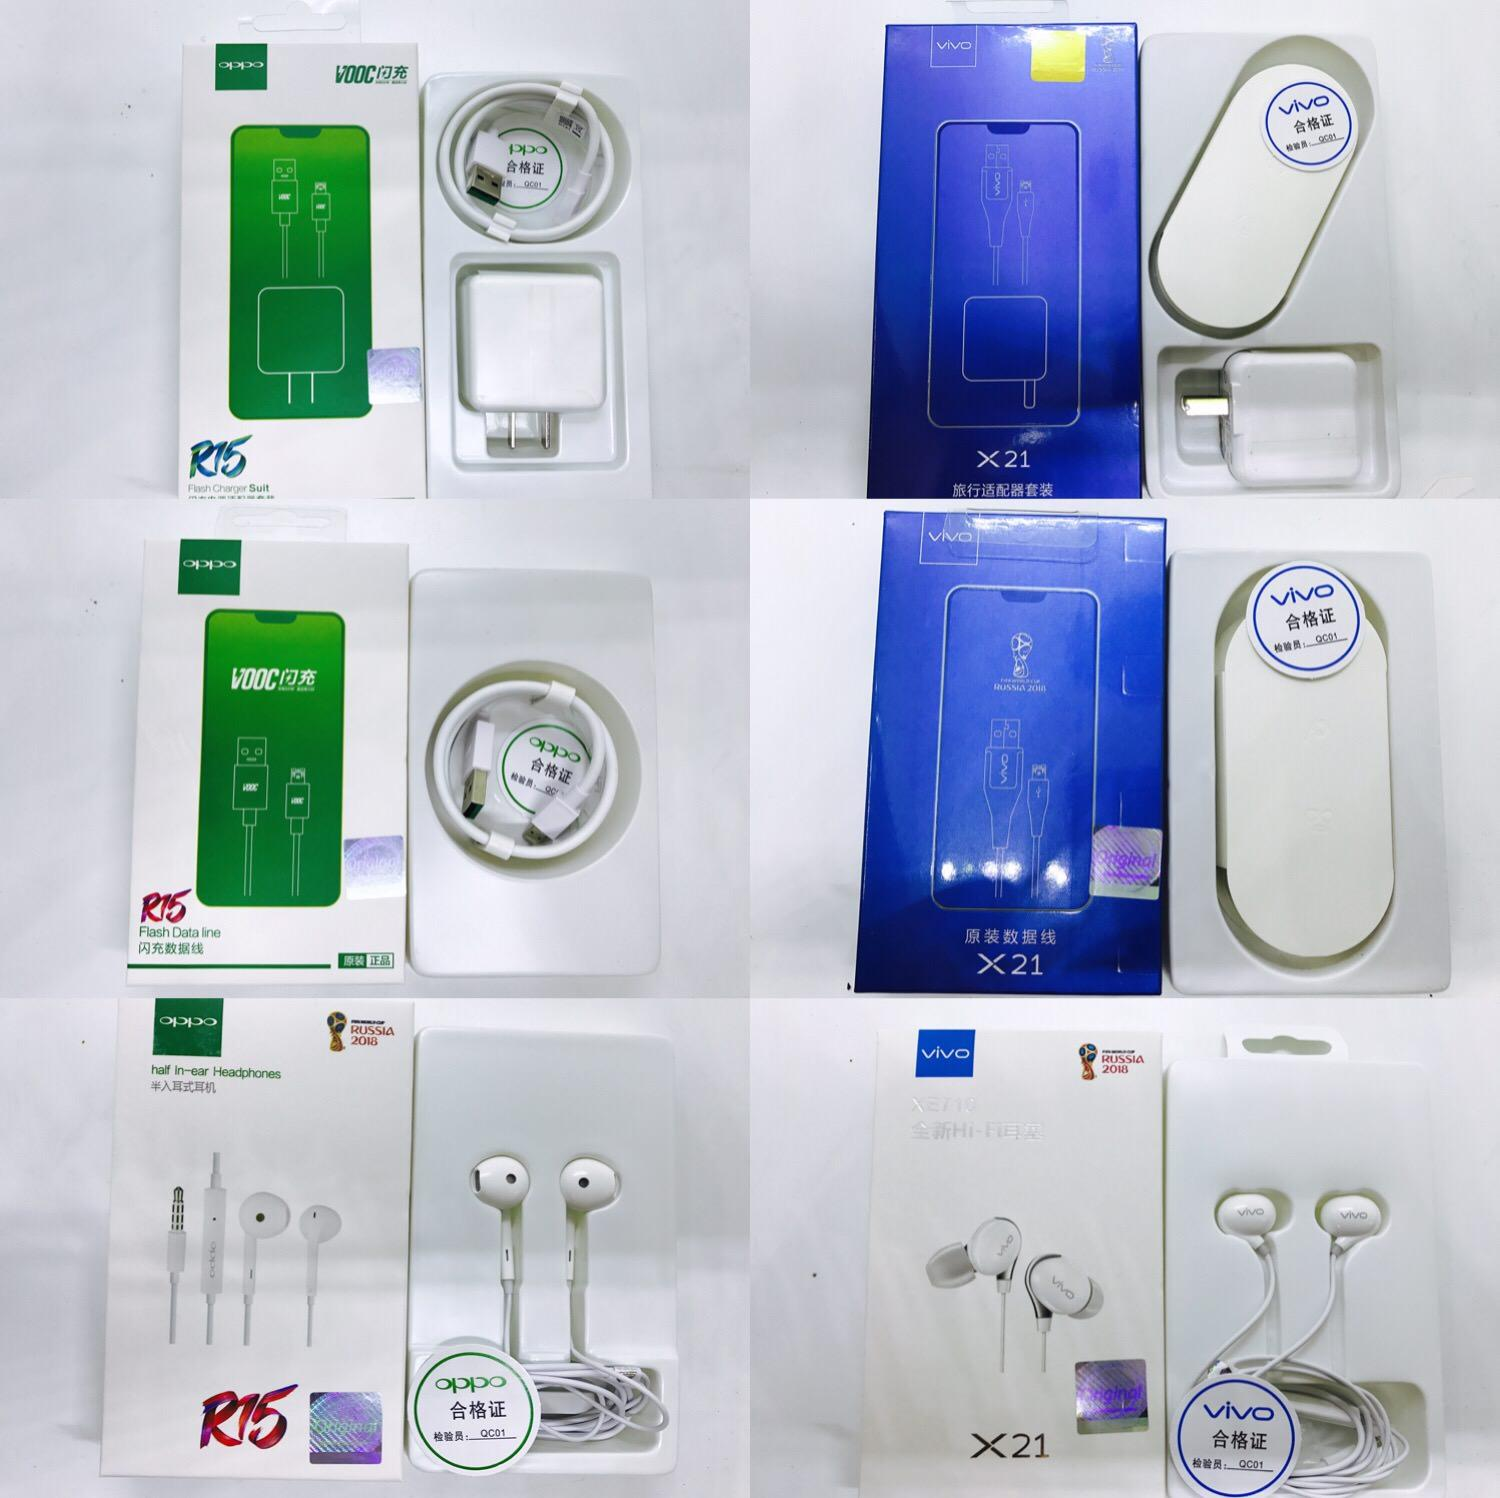 Vivo Philippines Price List Smartphone Bluetooth Headphone Speaker V9 Ori Cables Chargers